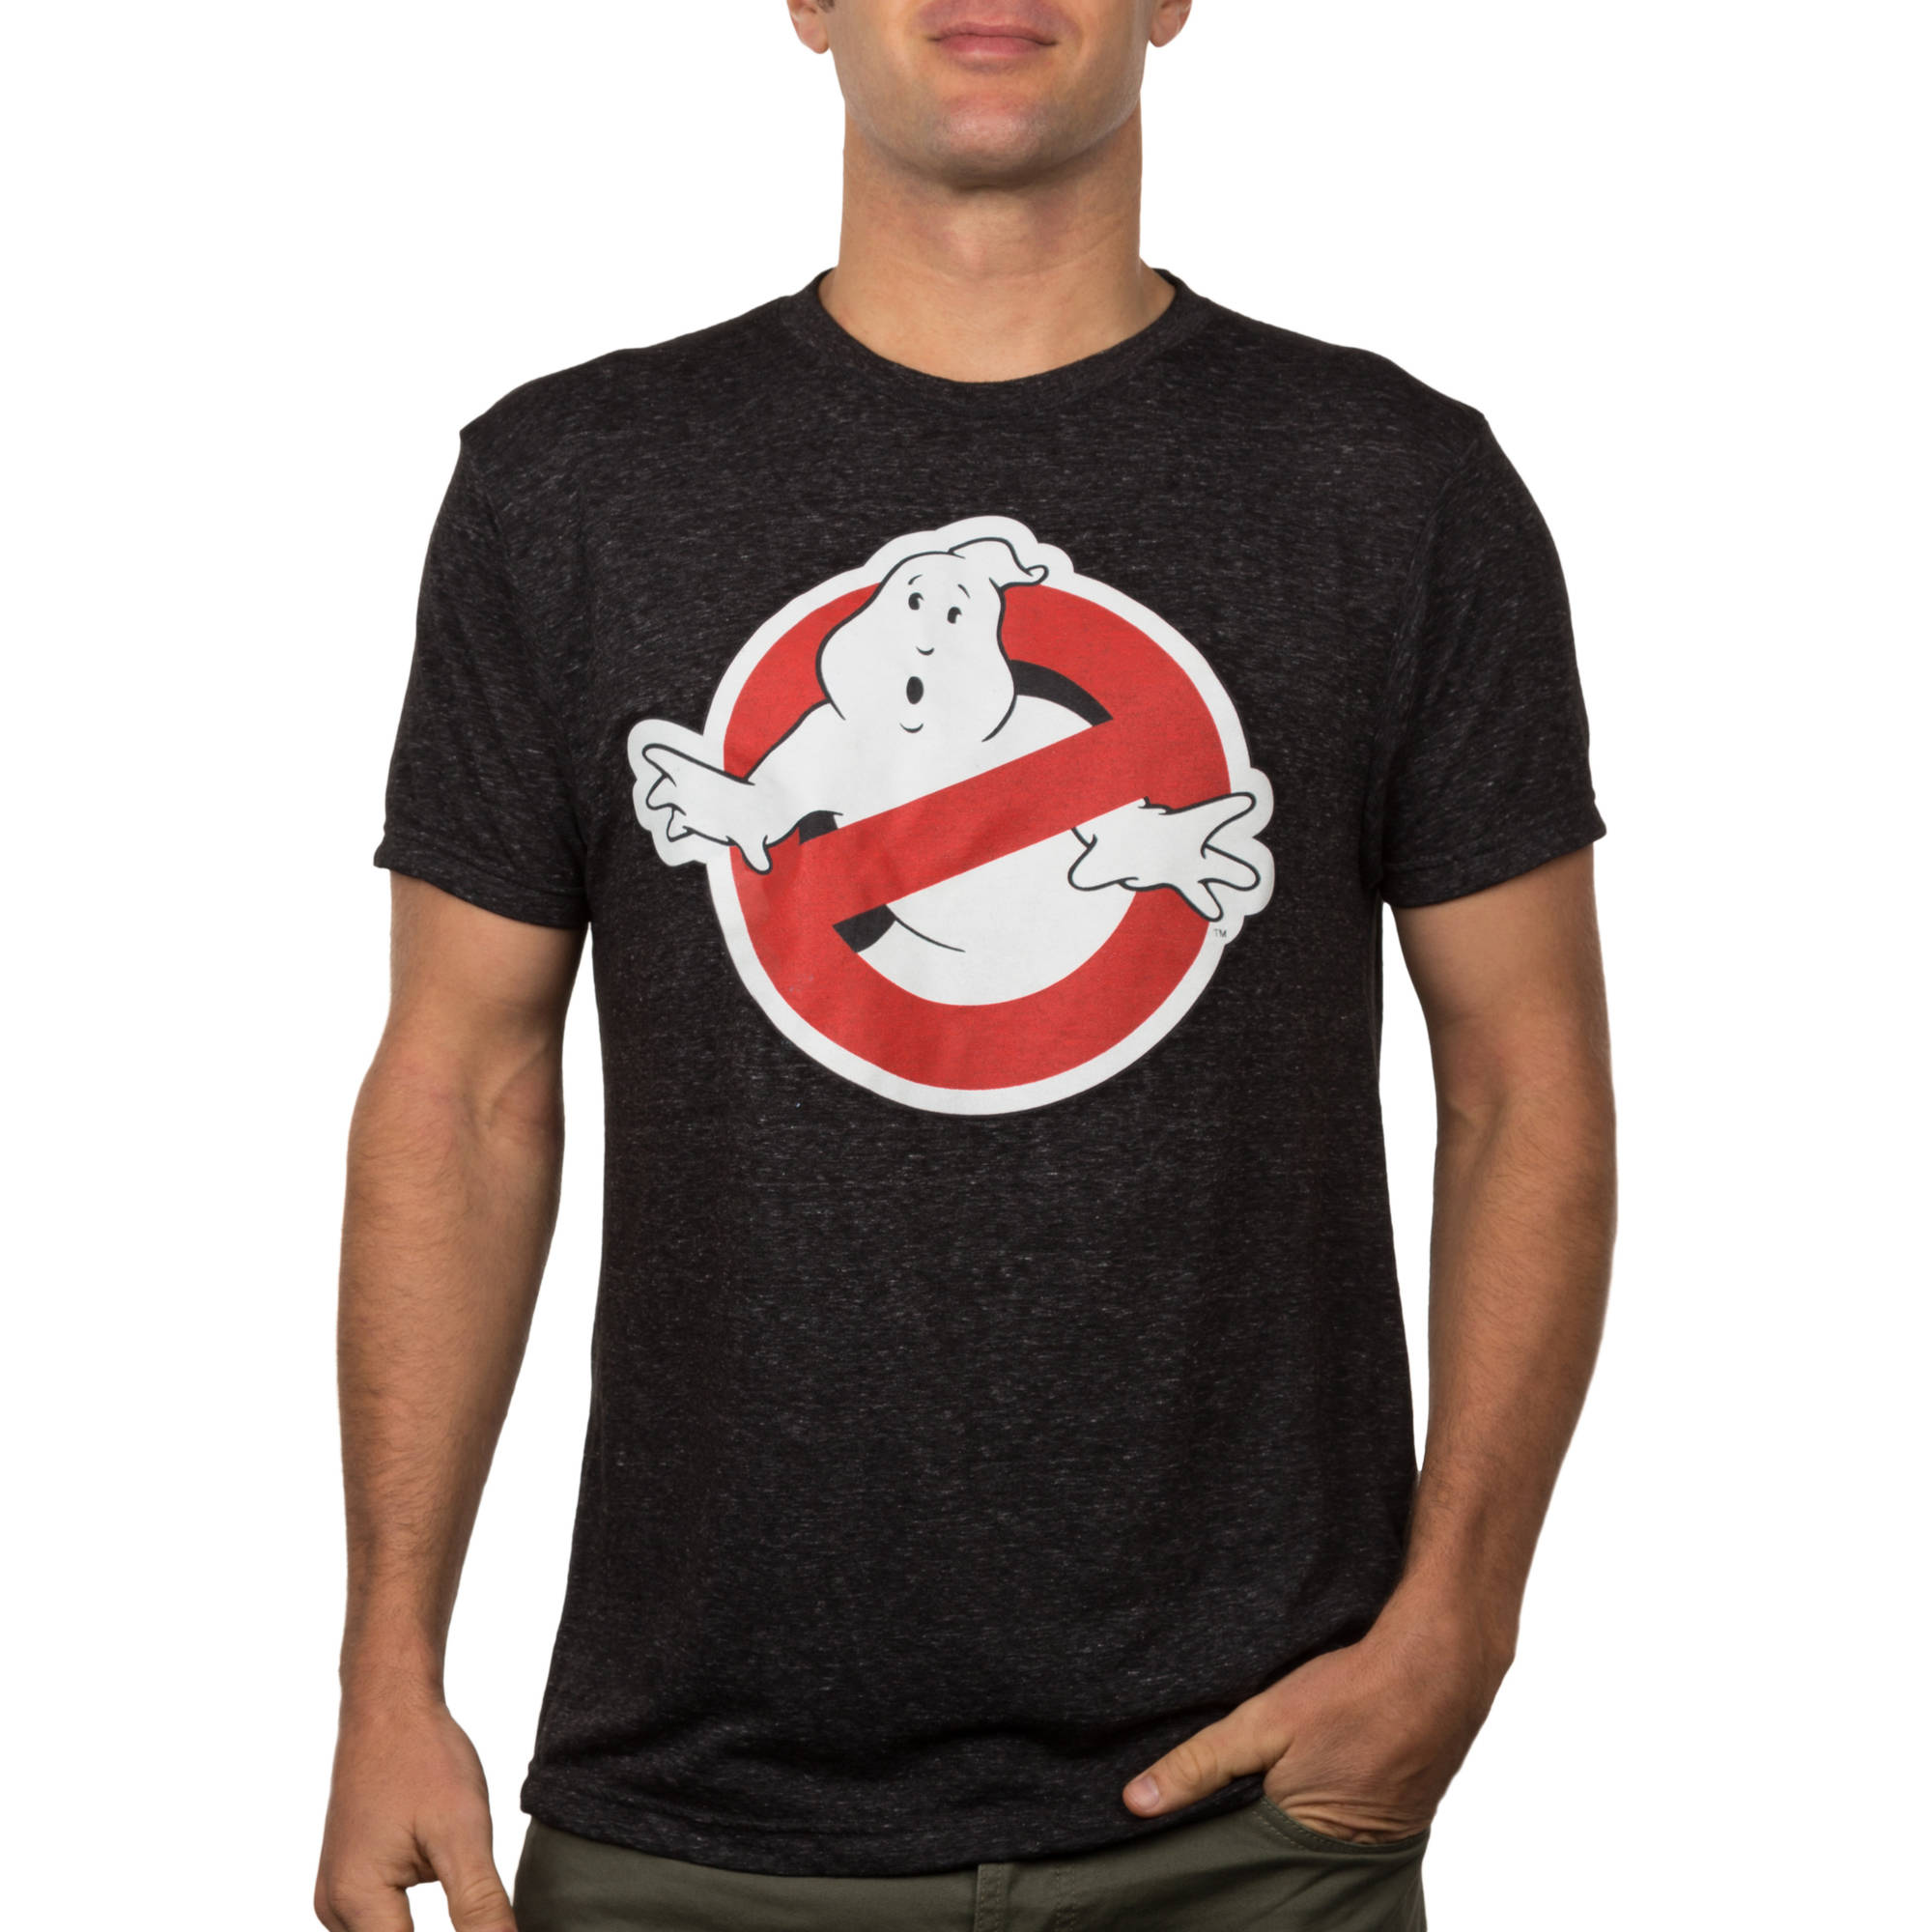 Ghostbusters No Ghost Men's Burnout Graphic Tee